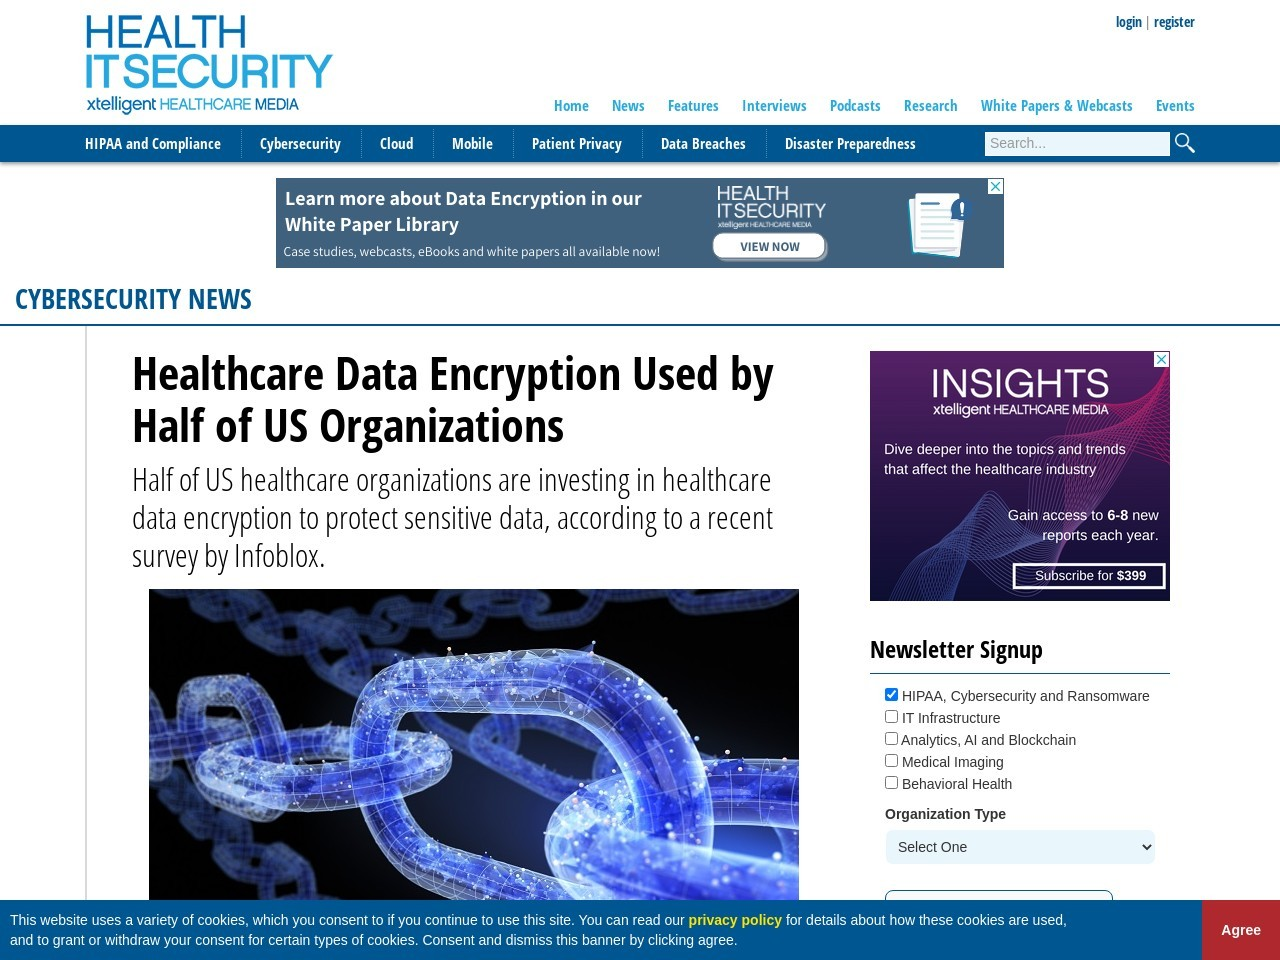 Healthcare Data Encryption Used by Half of US Organizations